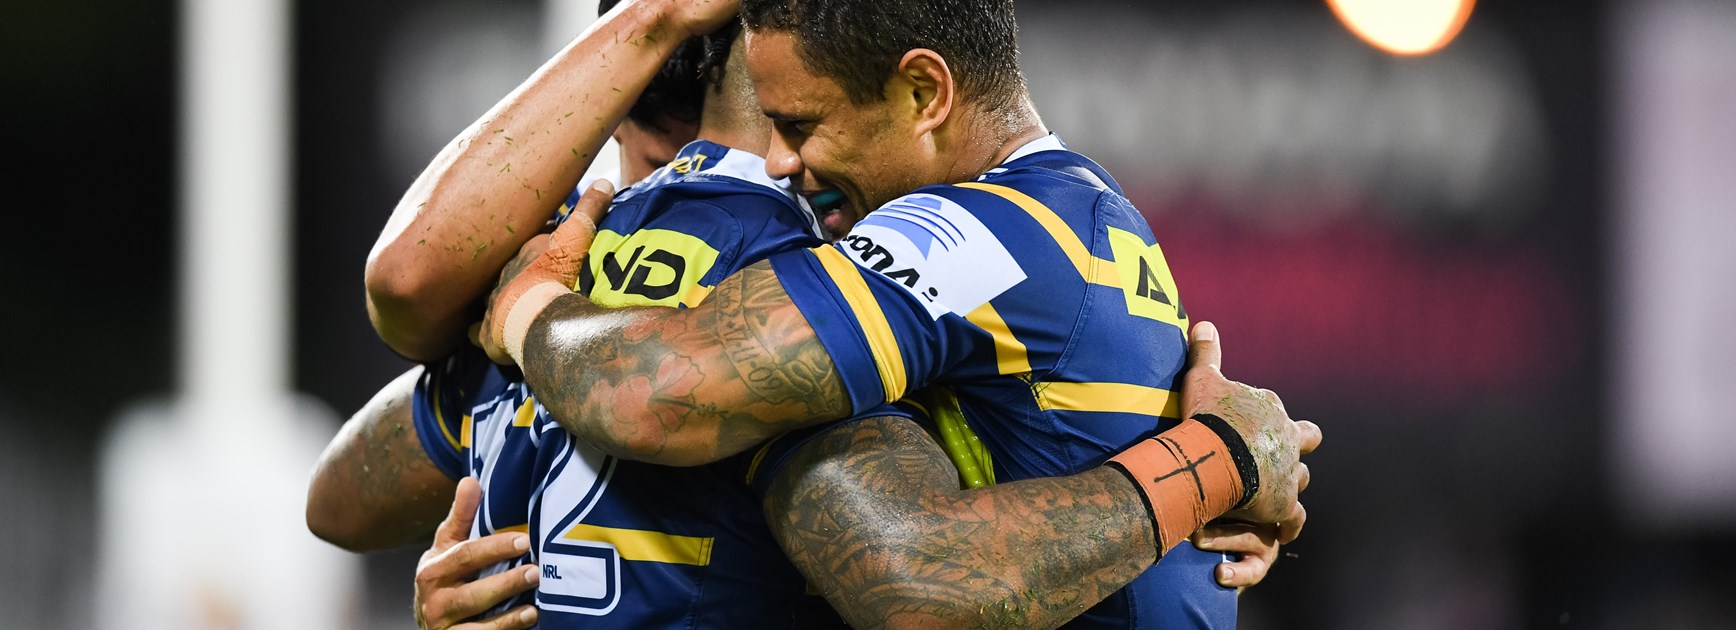 FAN VOTE: Best on ground - Eels v Raiders, Round 15